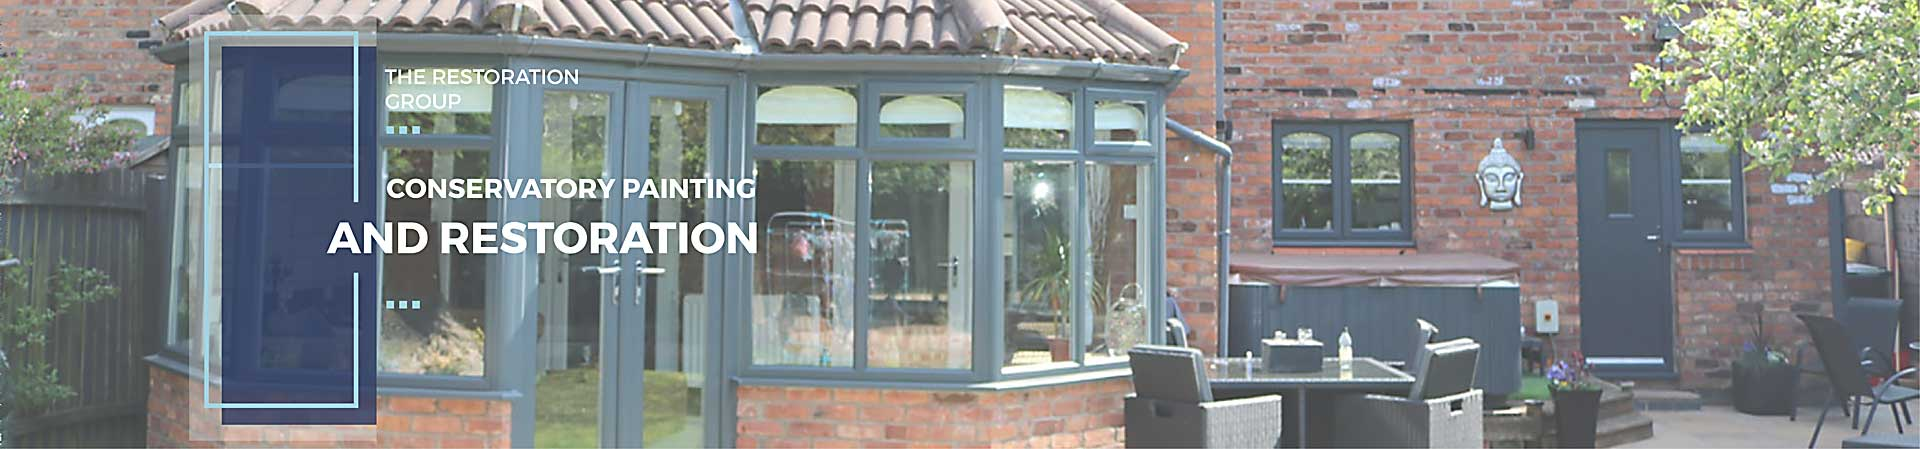 UPVC Conservatory Painting